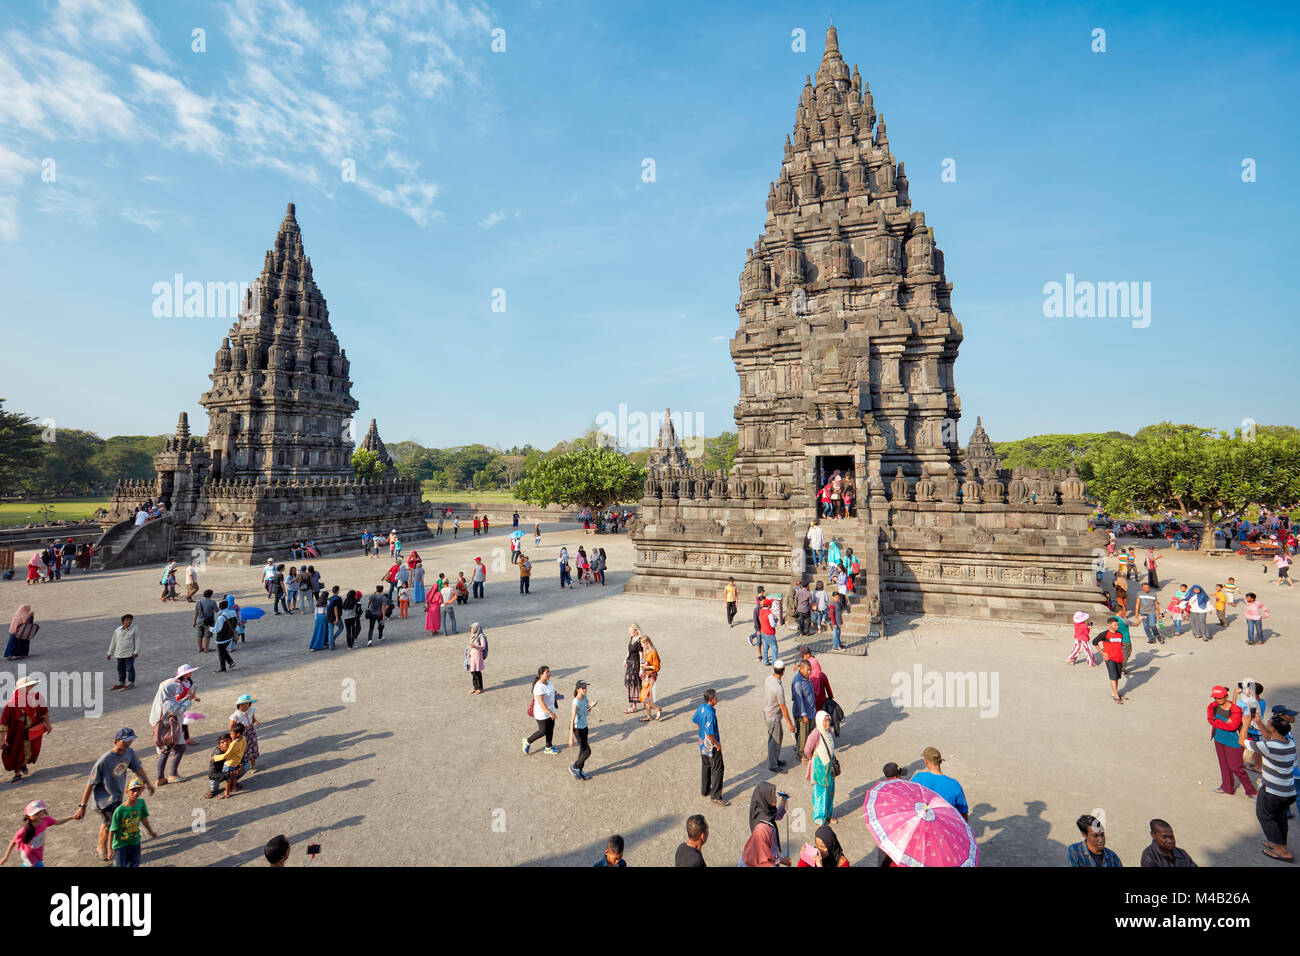 Visitors at the Prambanan Hindu Temple Compound. Special Region of Yogyakarta, Java, Indonesia. - Stock Image